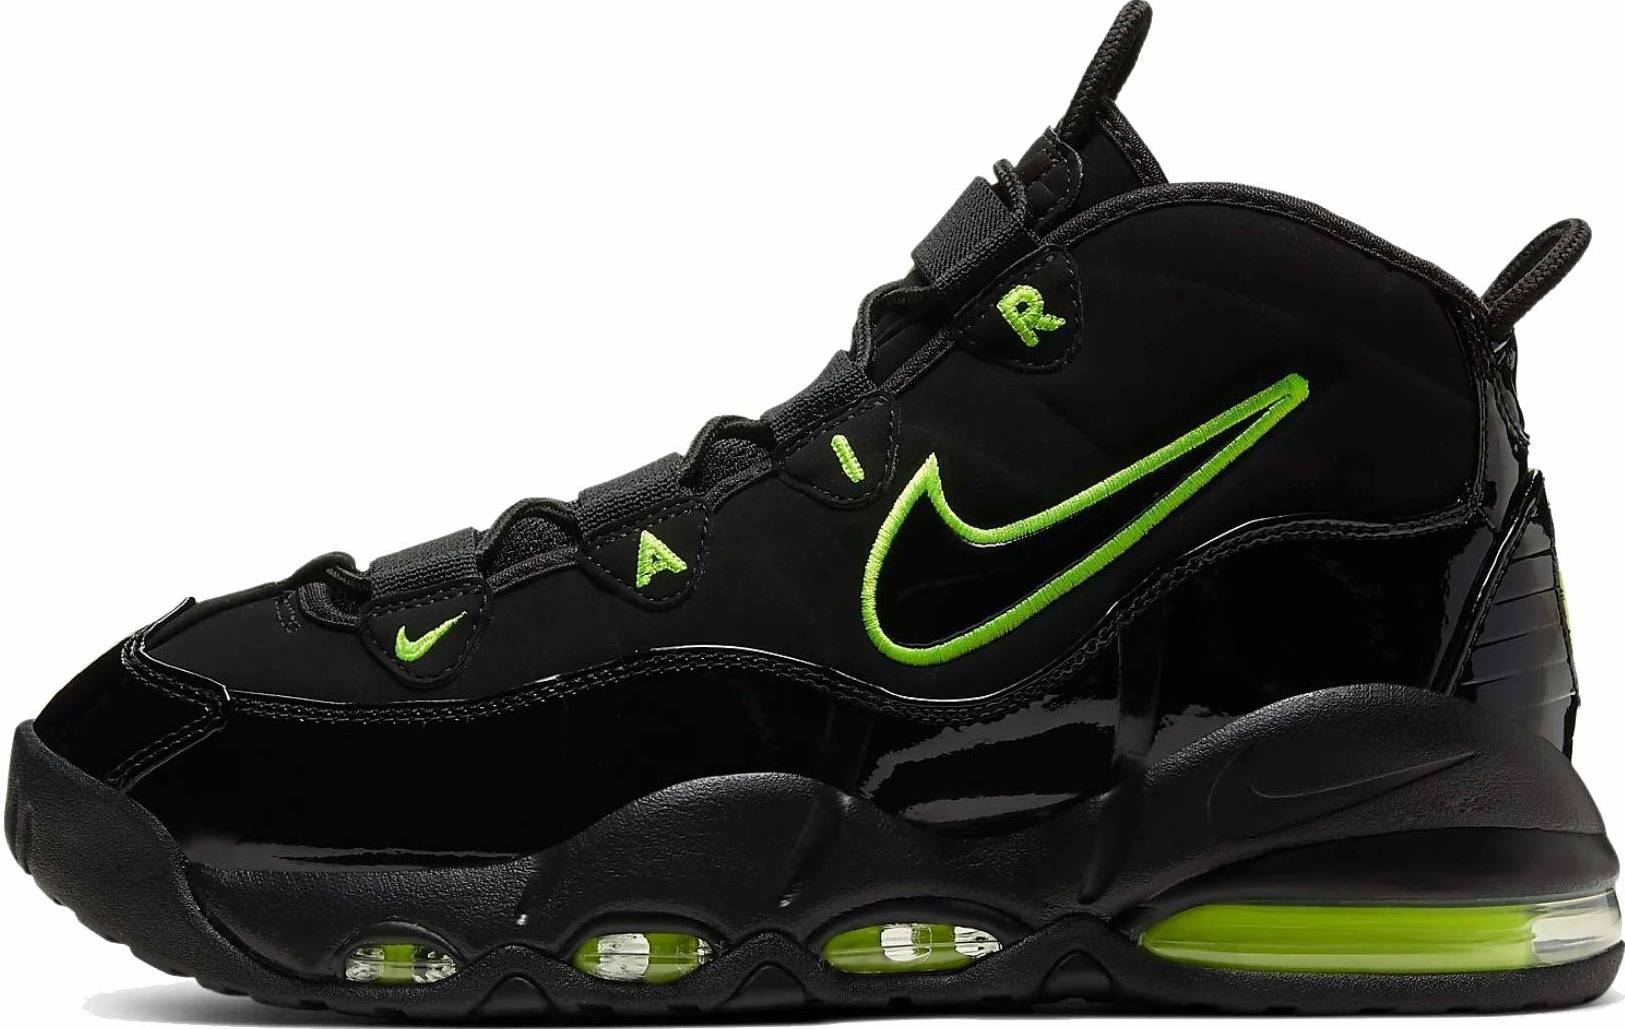 Nike Air Max Uptempo 95 sneakers in 5 colors (only $130)   RunRepeat